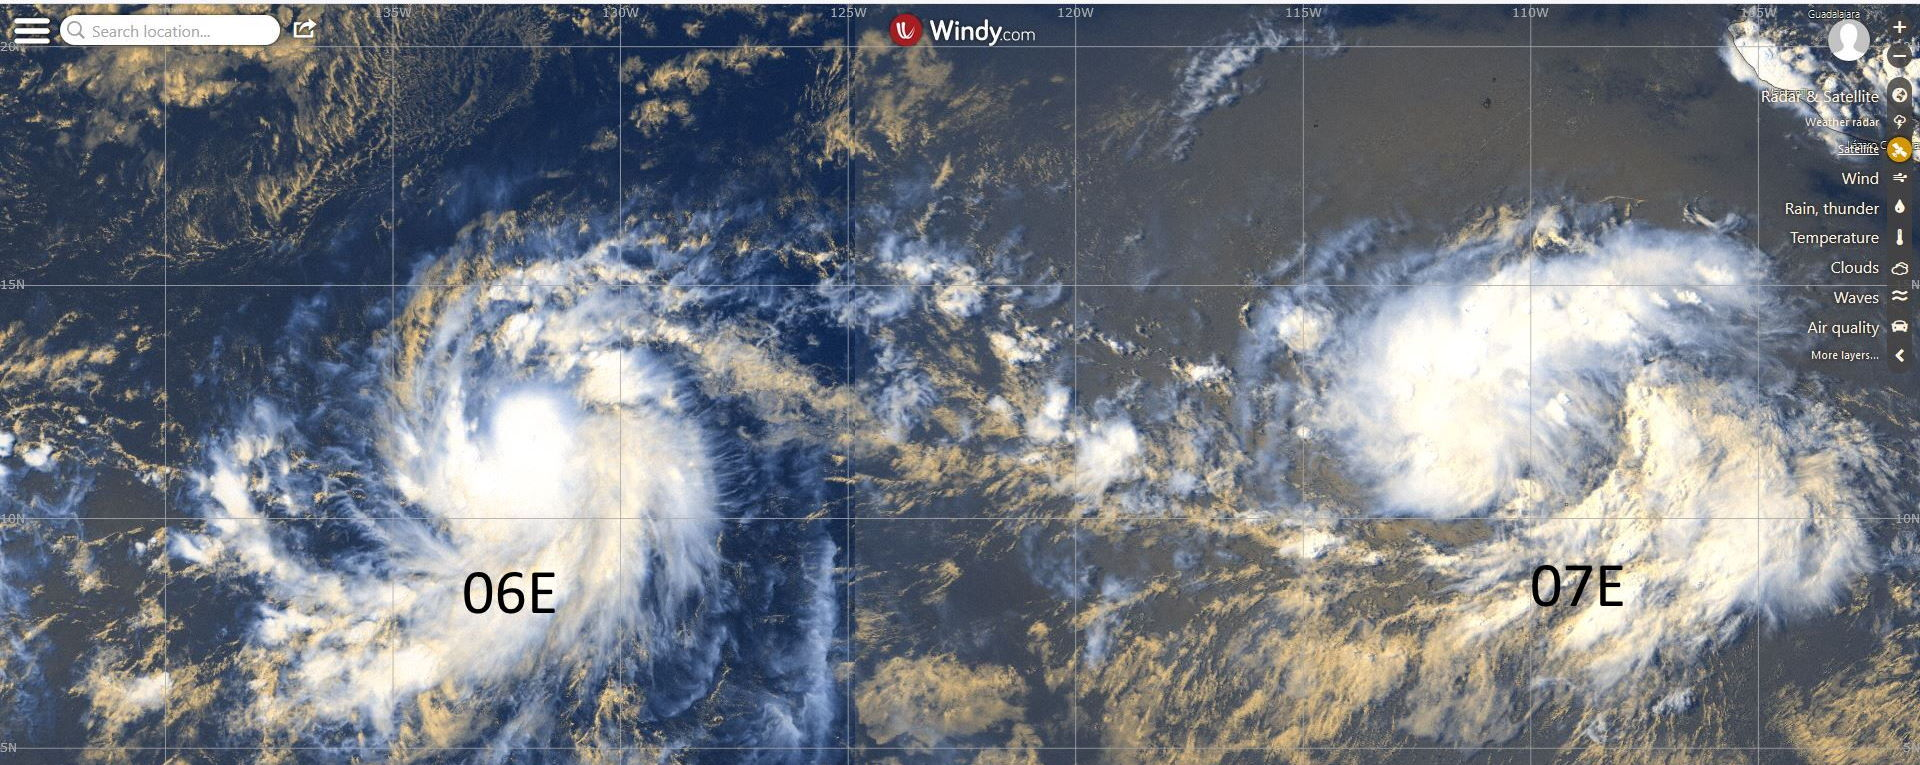 TS ERICK(06E) is forecast to intensify to Category 2 US in 72hours